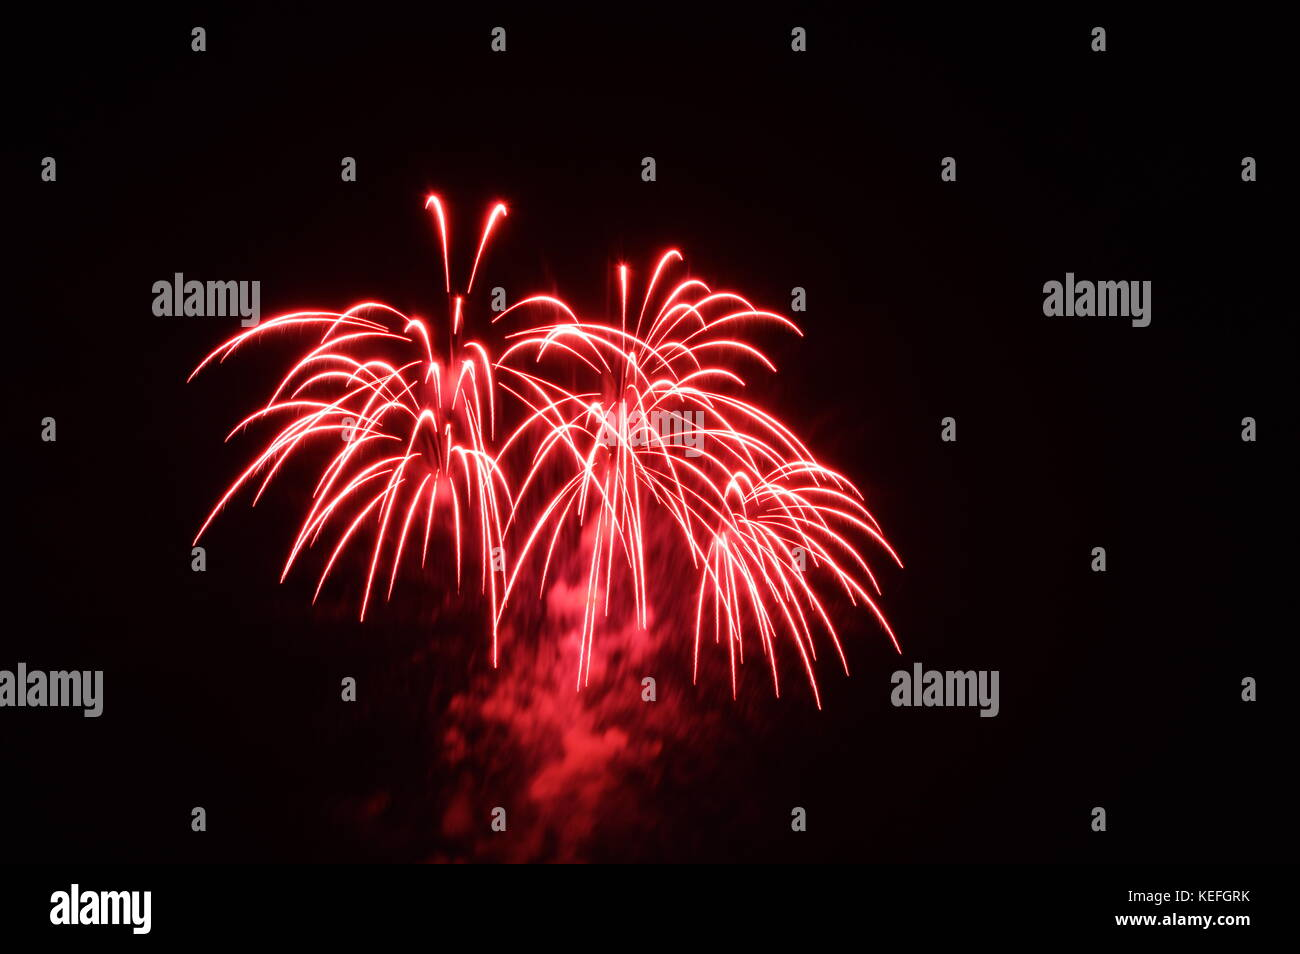 two rivers meet fireworks images